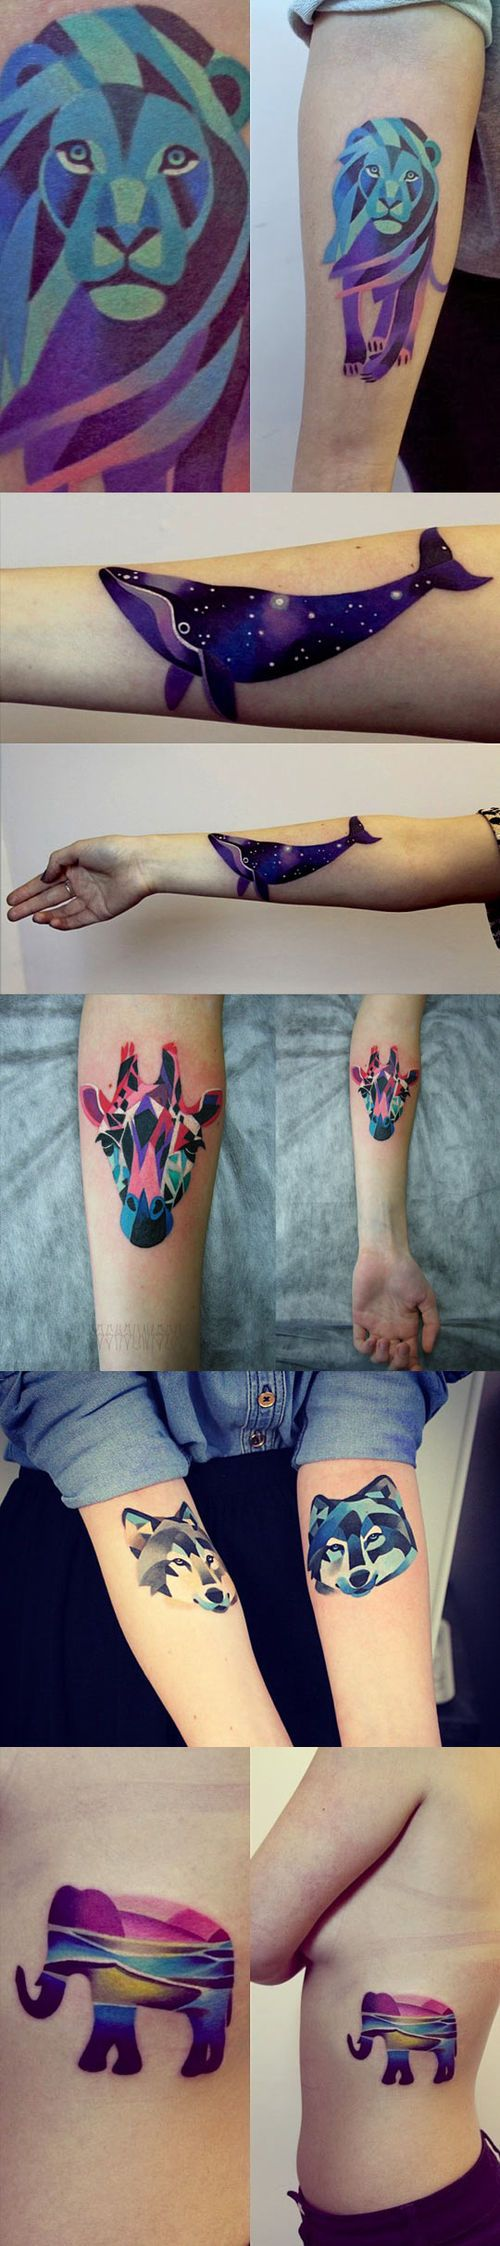 'Out of this world Sasha Unisex tattoos' i'd blates have the whale and make it the windfish.